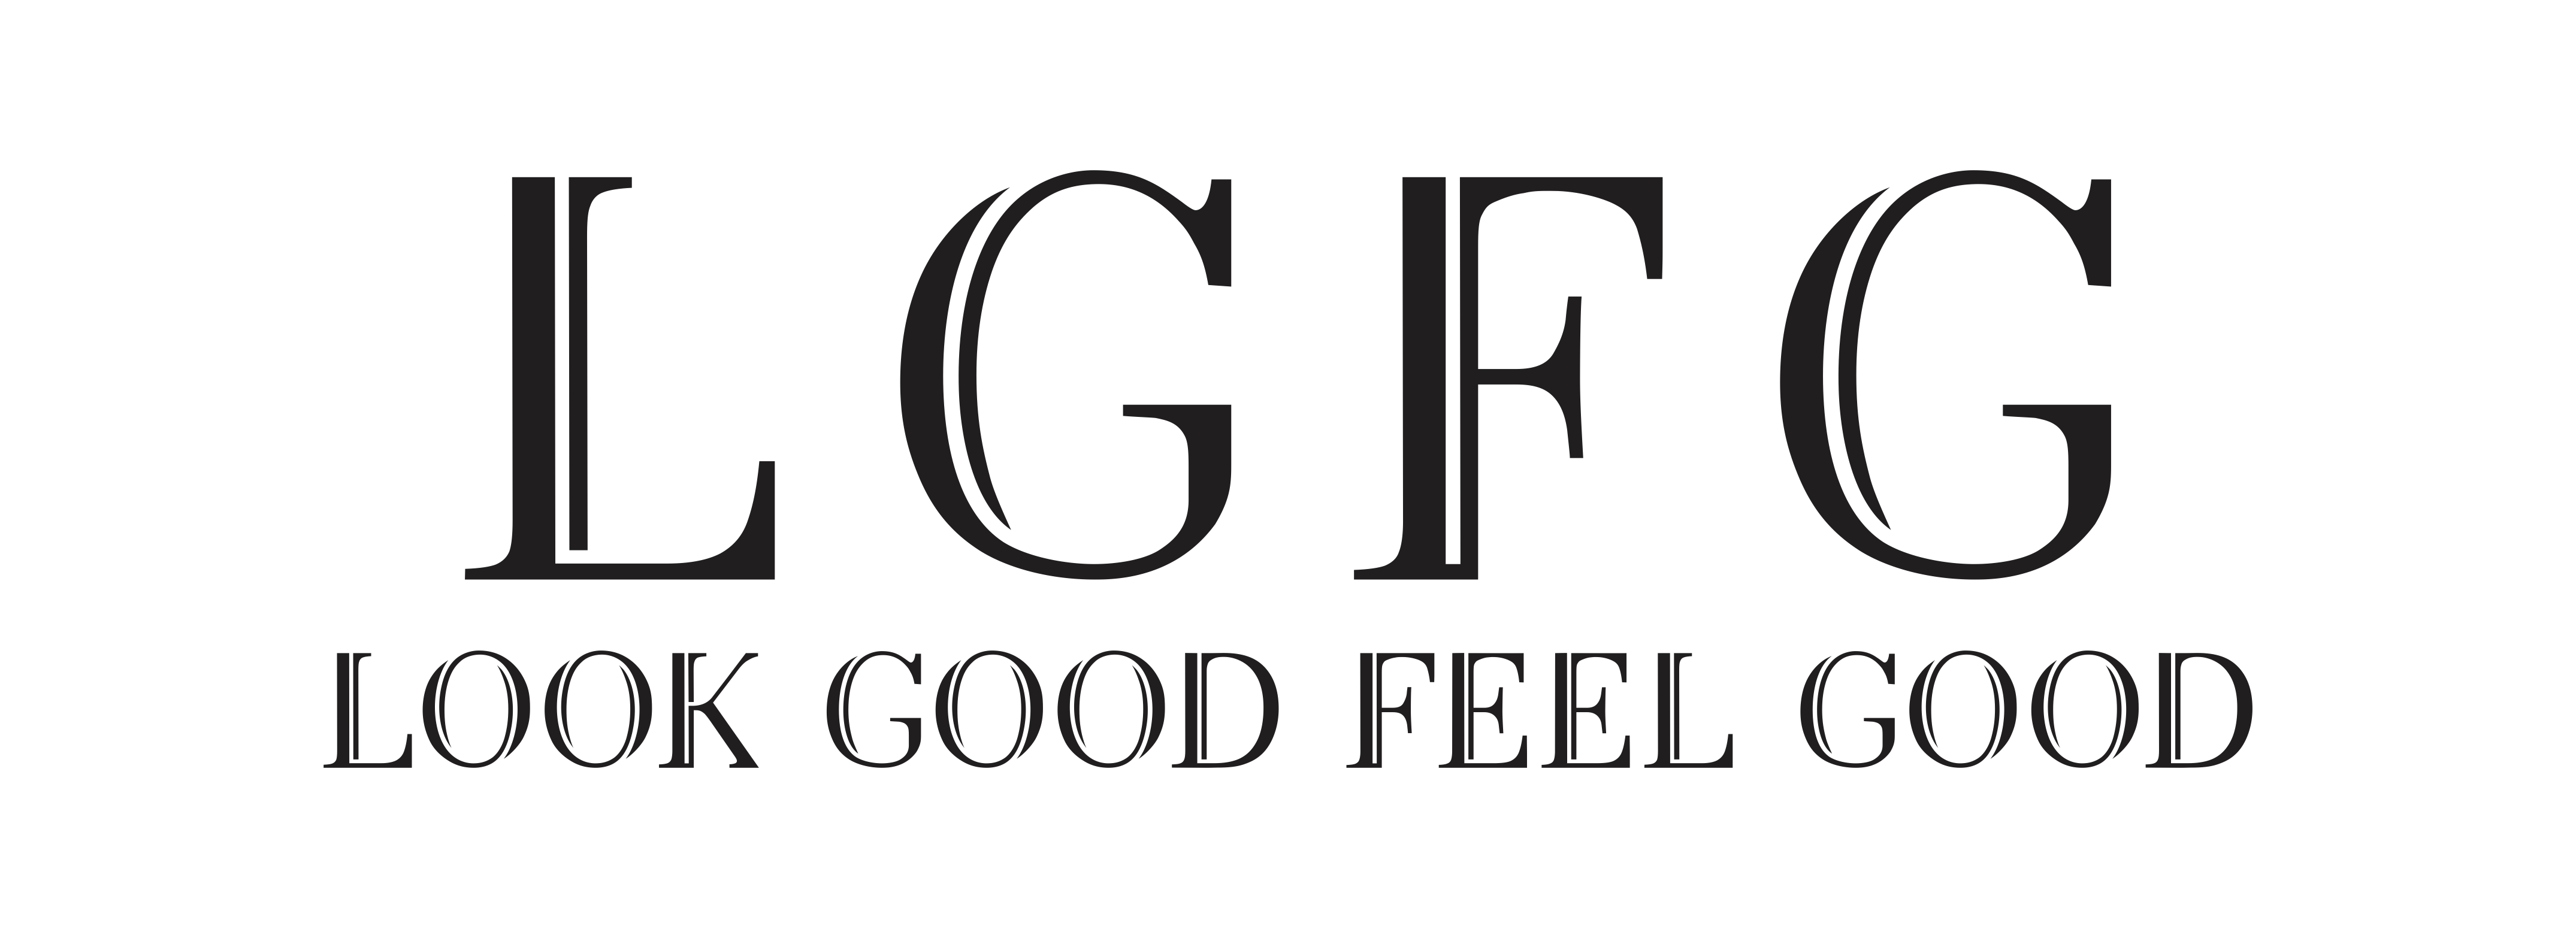 Look Good Feel Good Clothing LLC